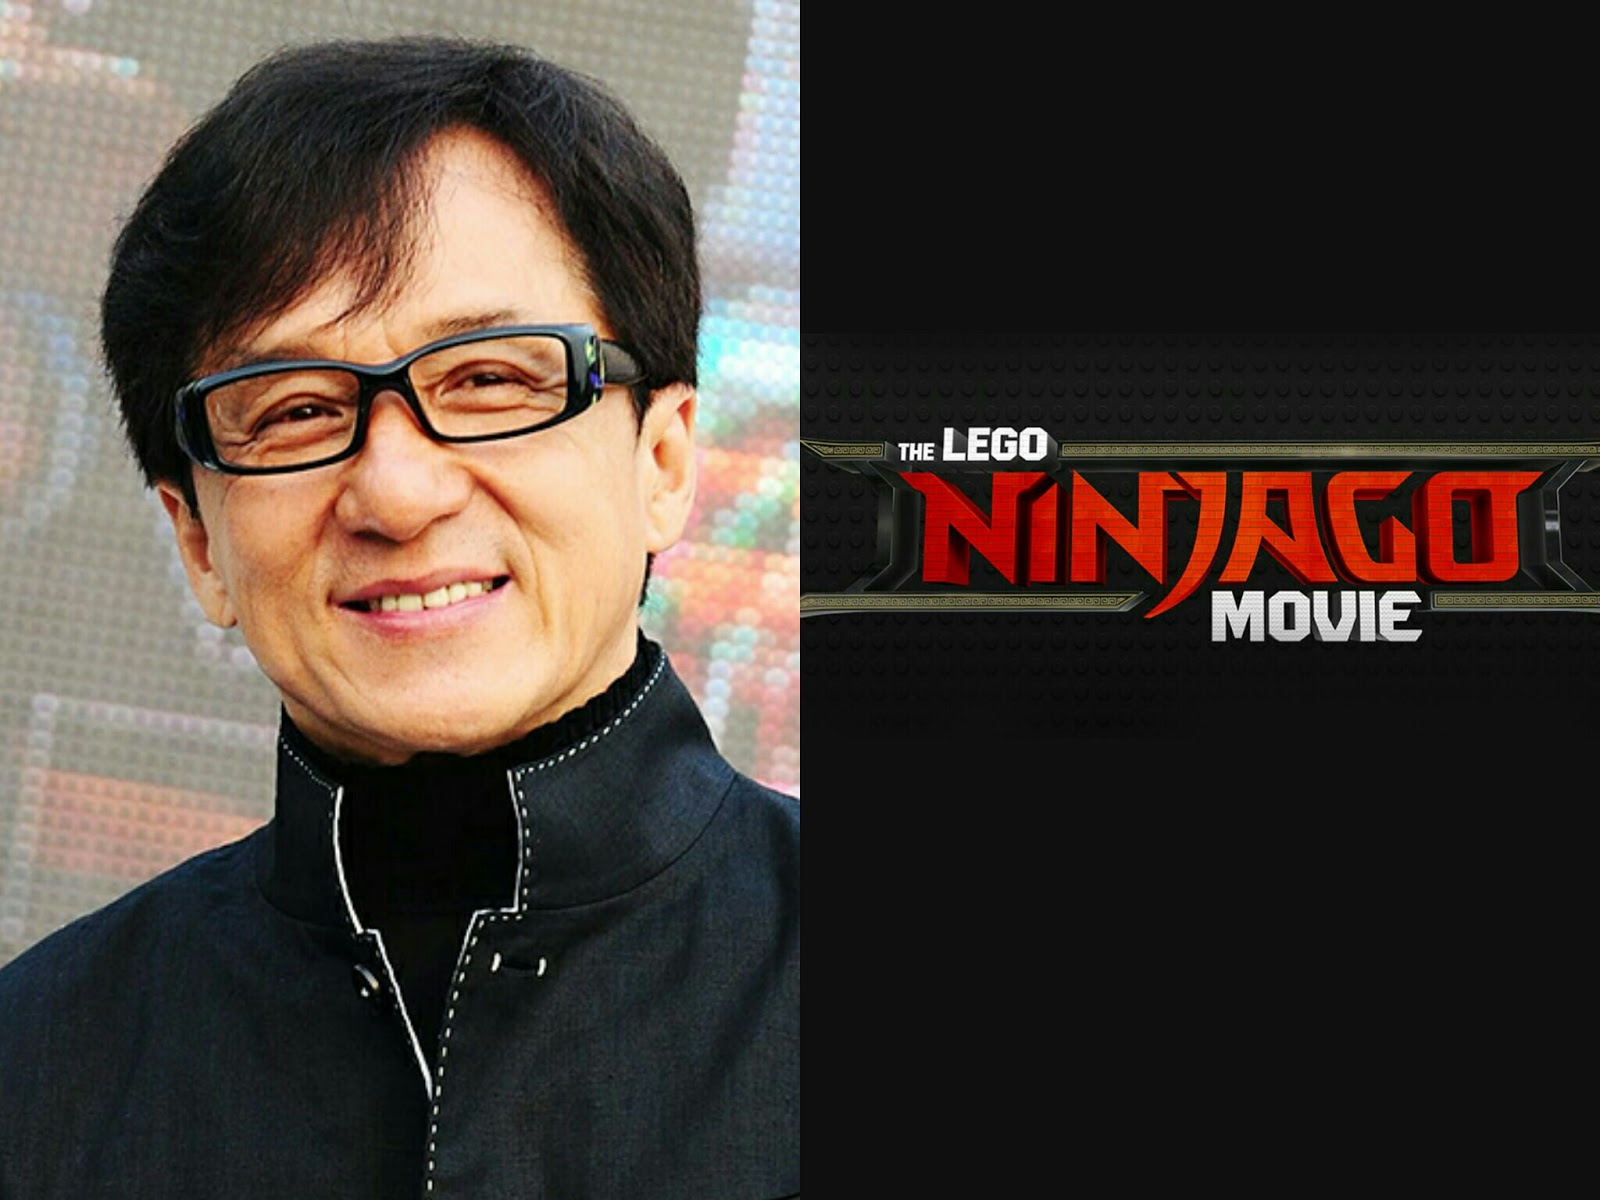 Jackie Chan Leads The Voice Cast For THE LEGO NINJAGO MOVIE